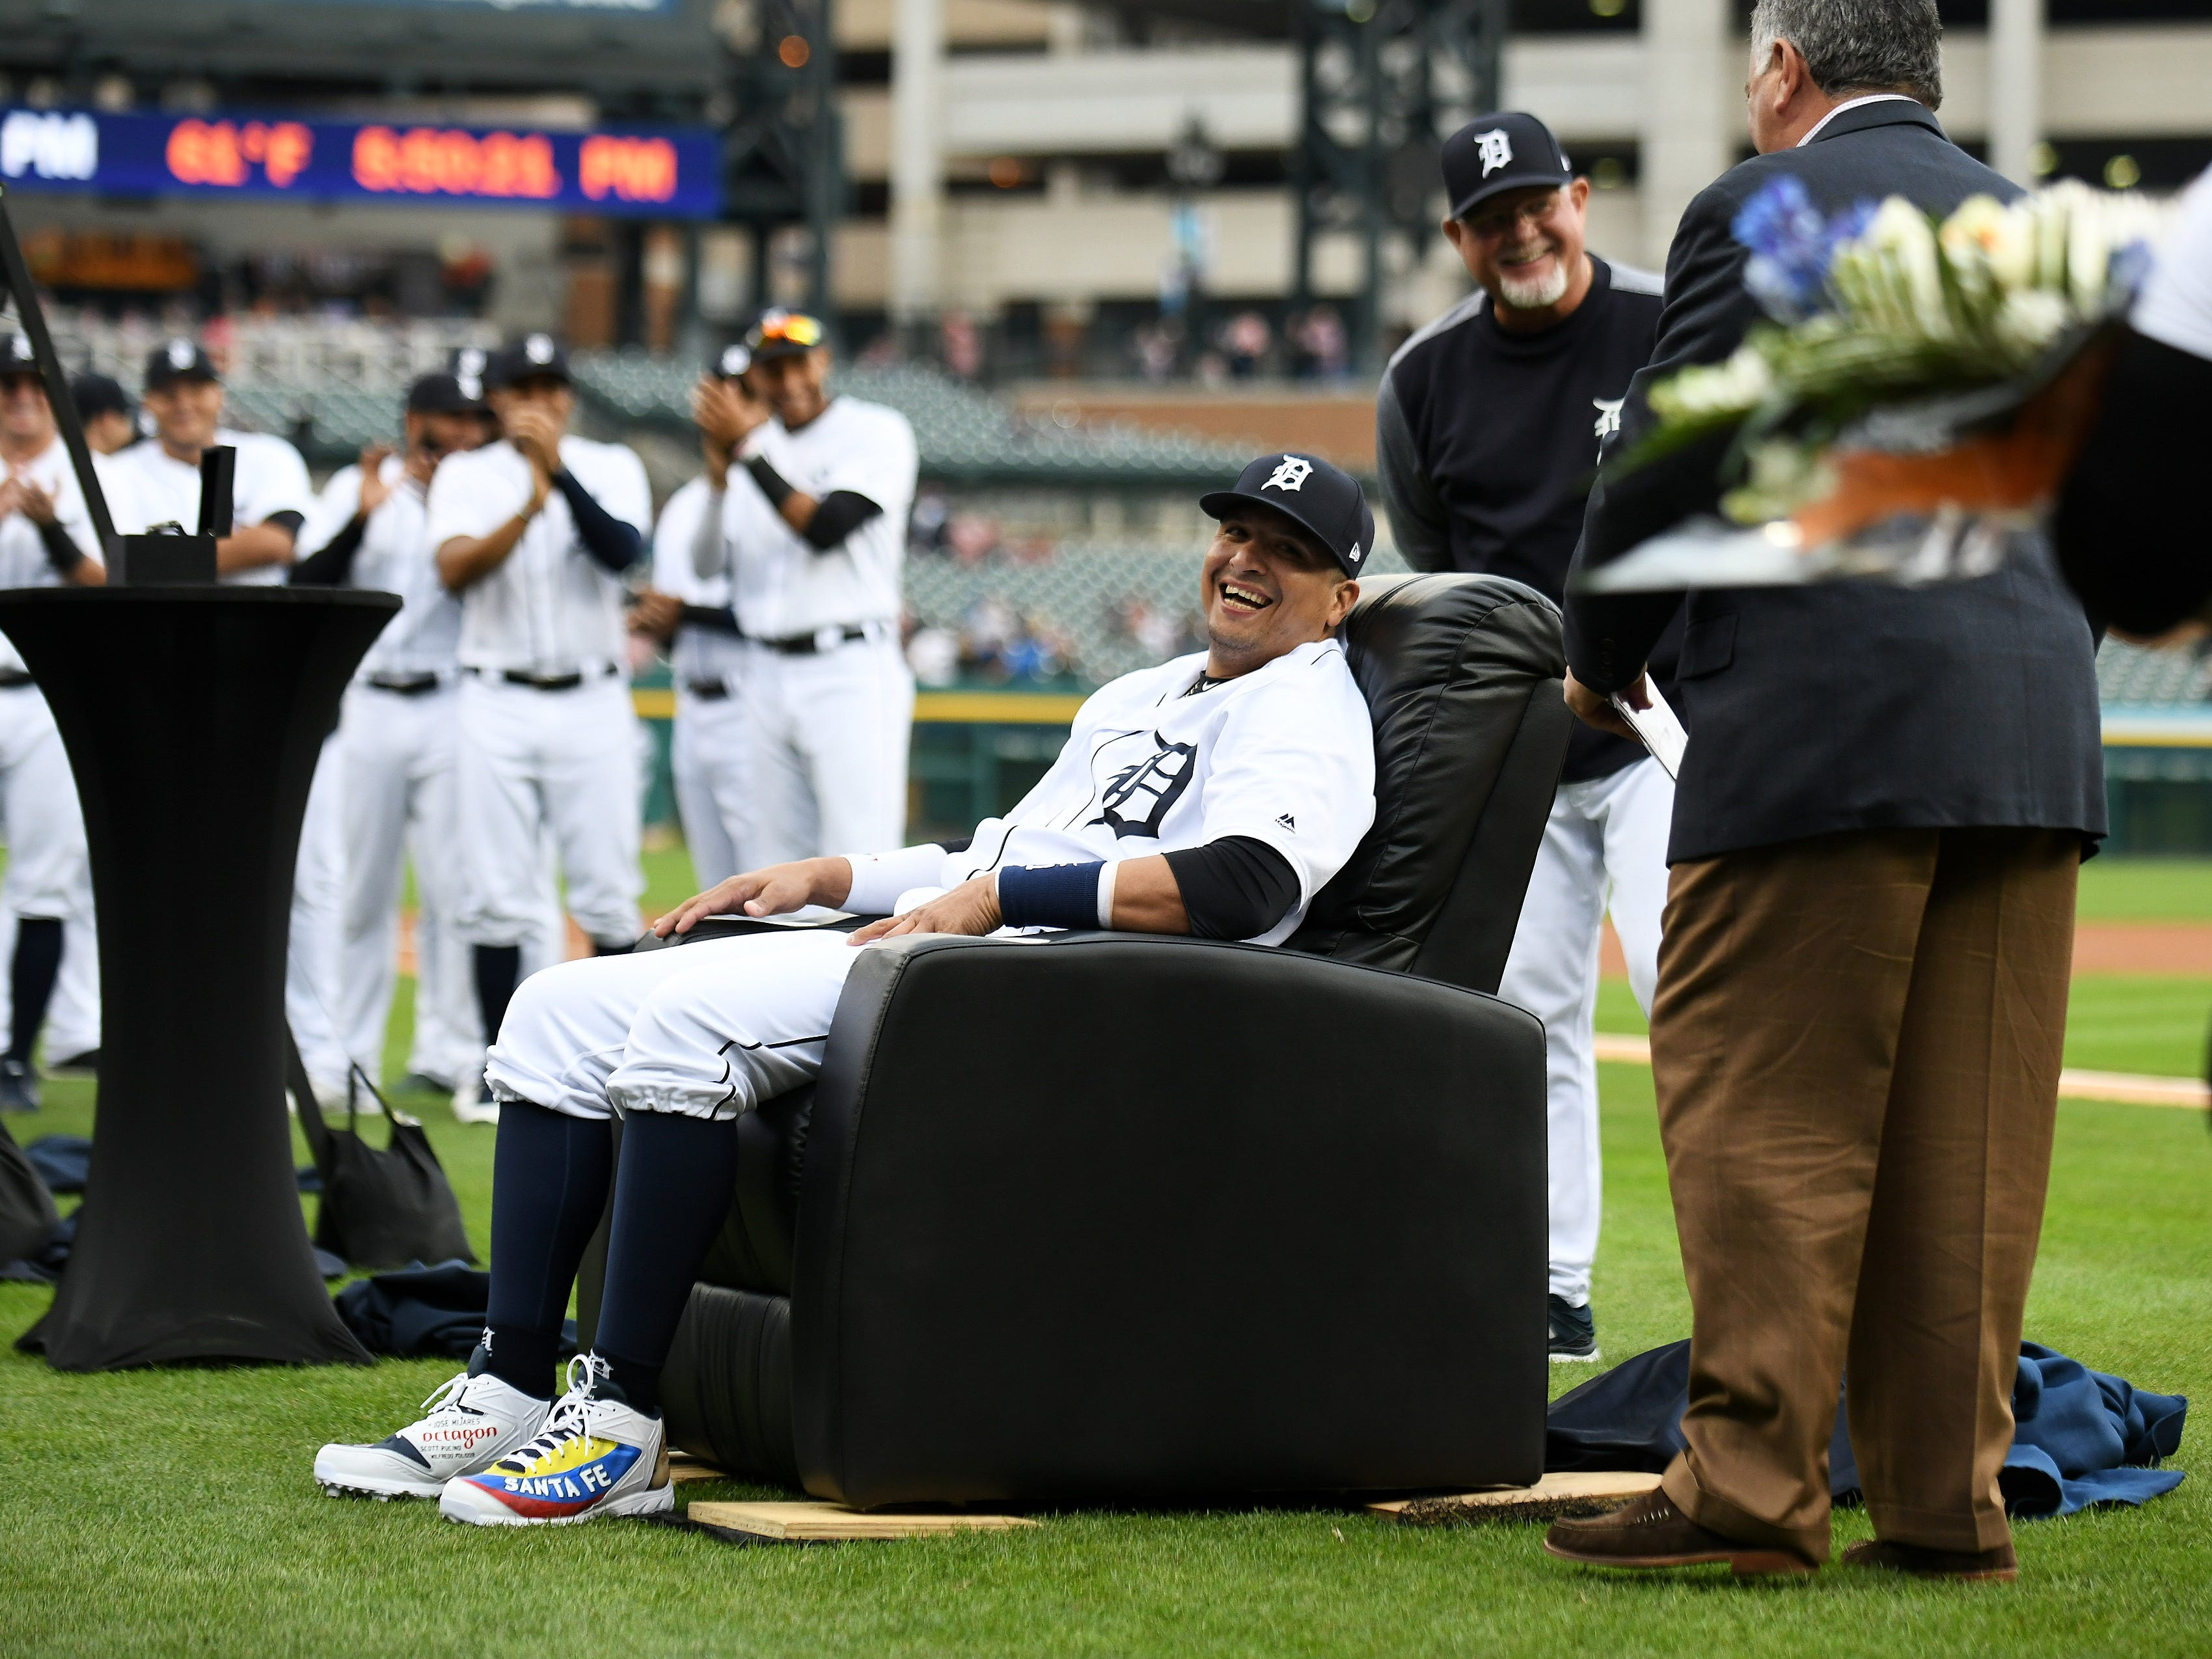 While his Tigers teammates applaud, Victor Martinez sits in his new gift recliner during a special tribute ceremony for the Tigers designated hitter and long-time team leader on Sept. 22, 2018. Martinez retired at the end of the 2018 season.